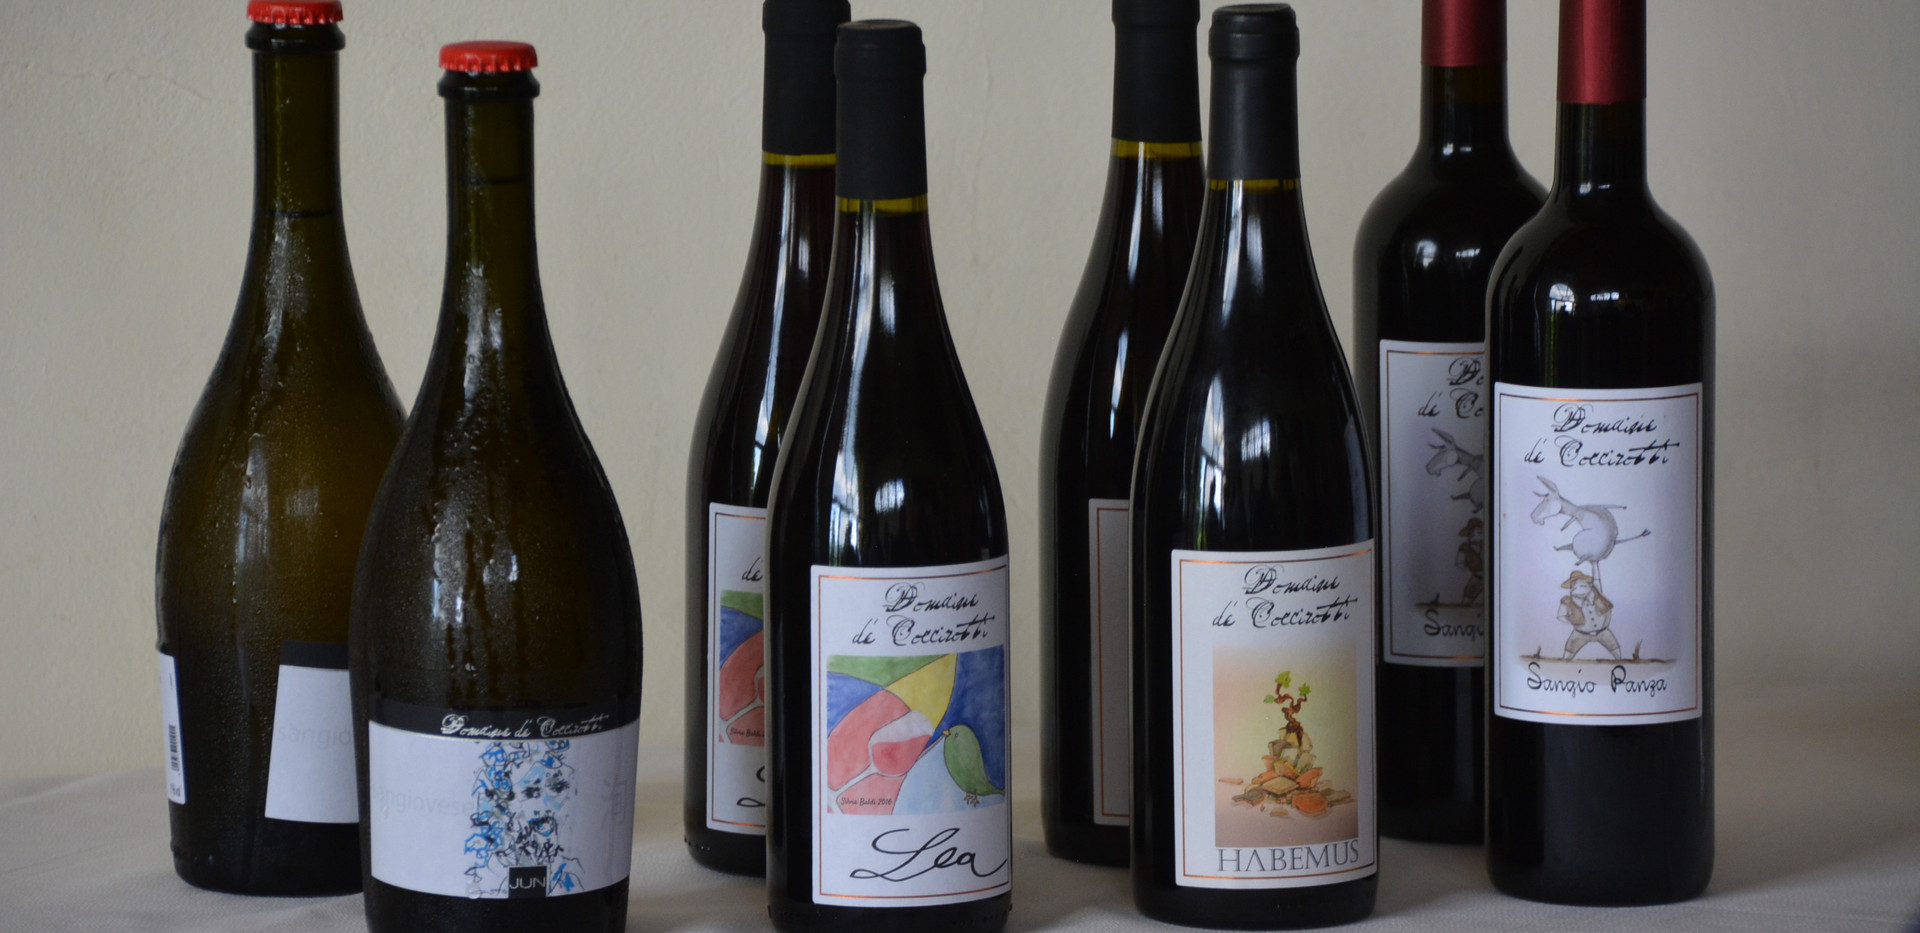 Taste 4 different wines at each winery